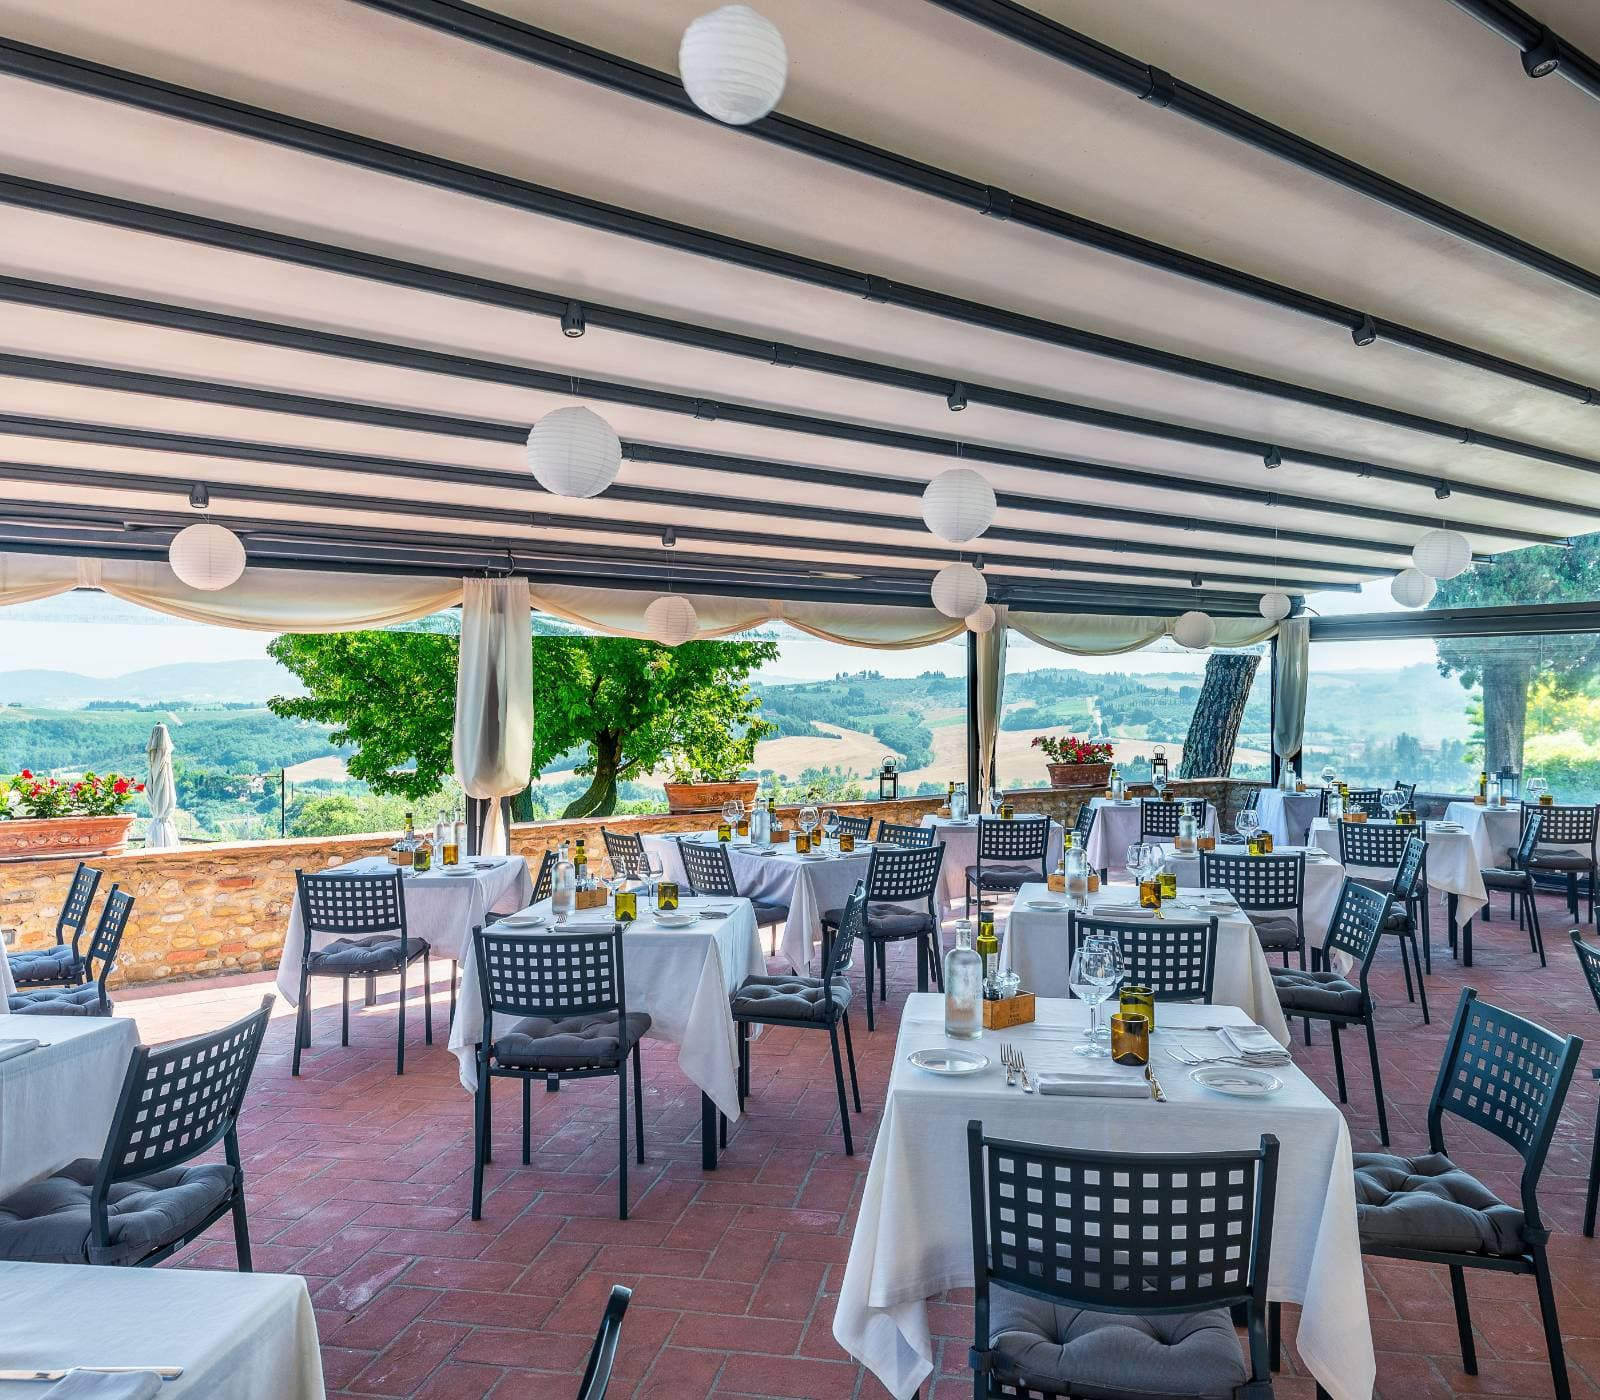 The restaurant that puts Tuscany on the table